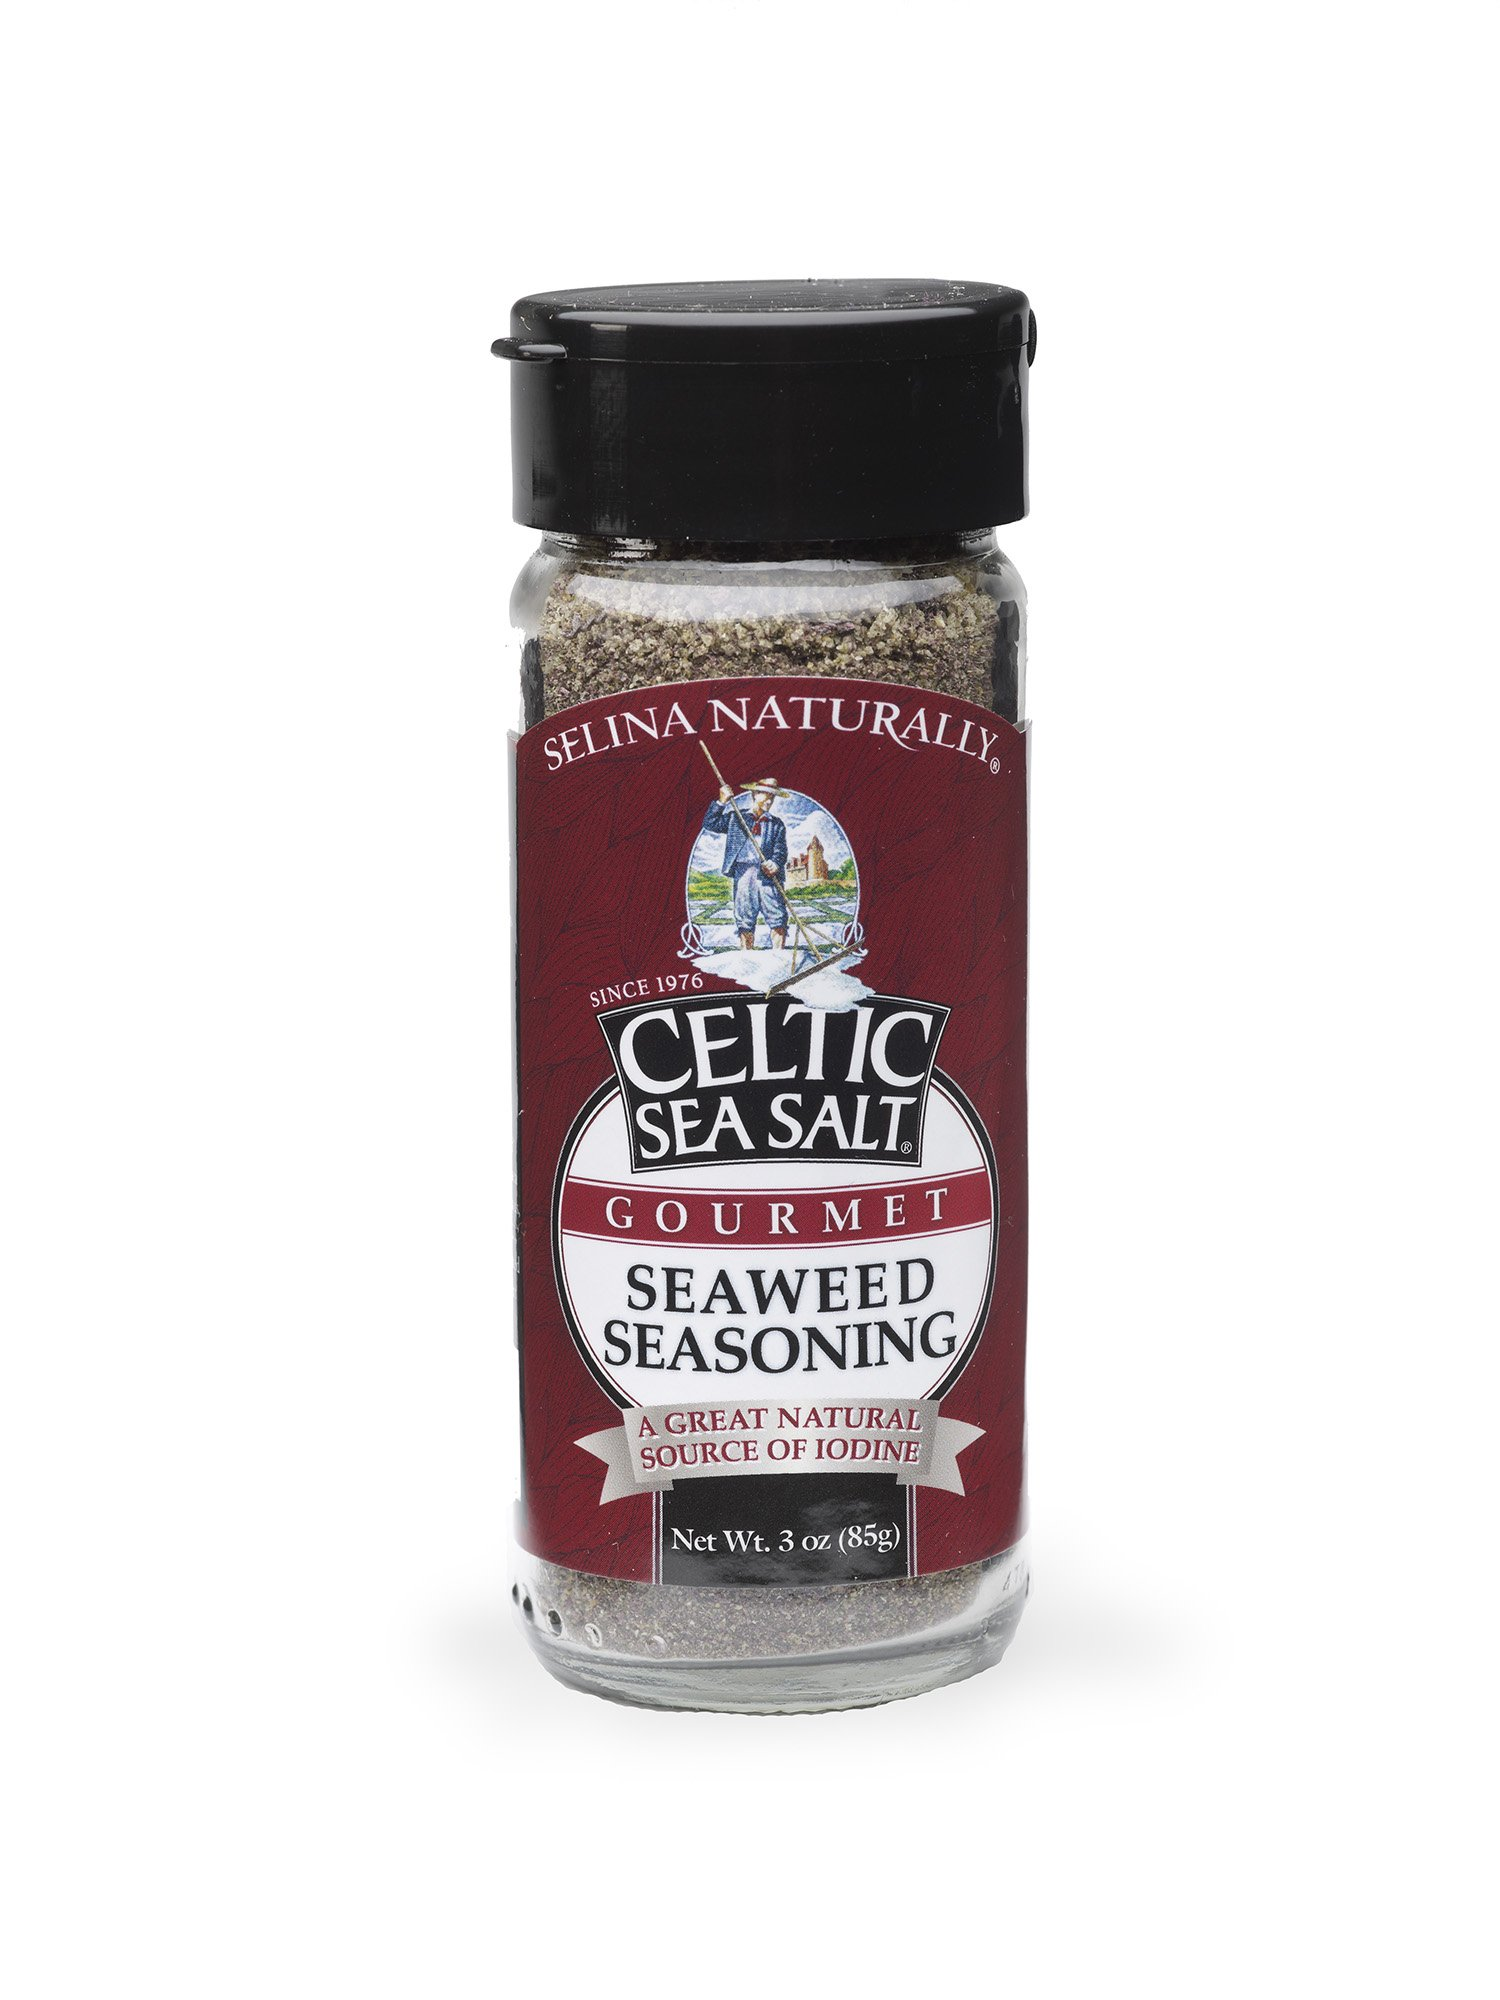 Celtic Sea Salt Gourmet Seaweed Seasoning Shaker, 2.7 Ounce